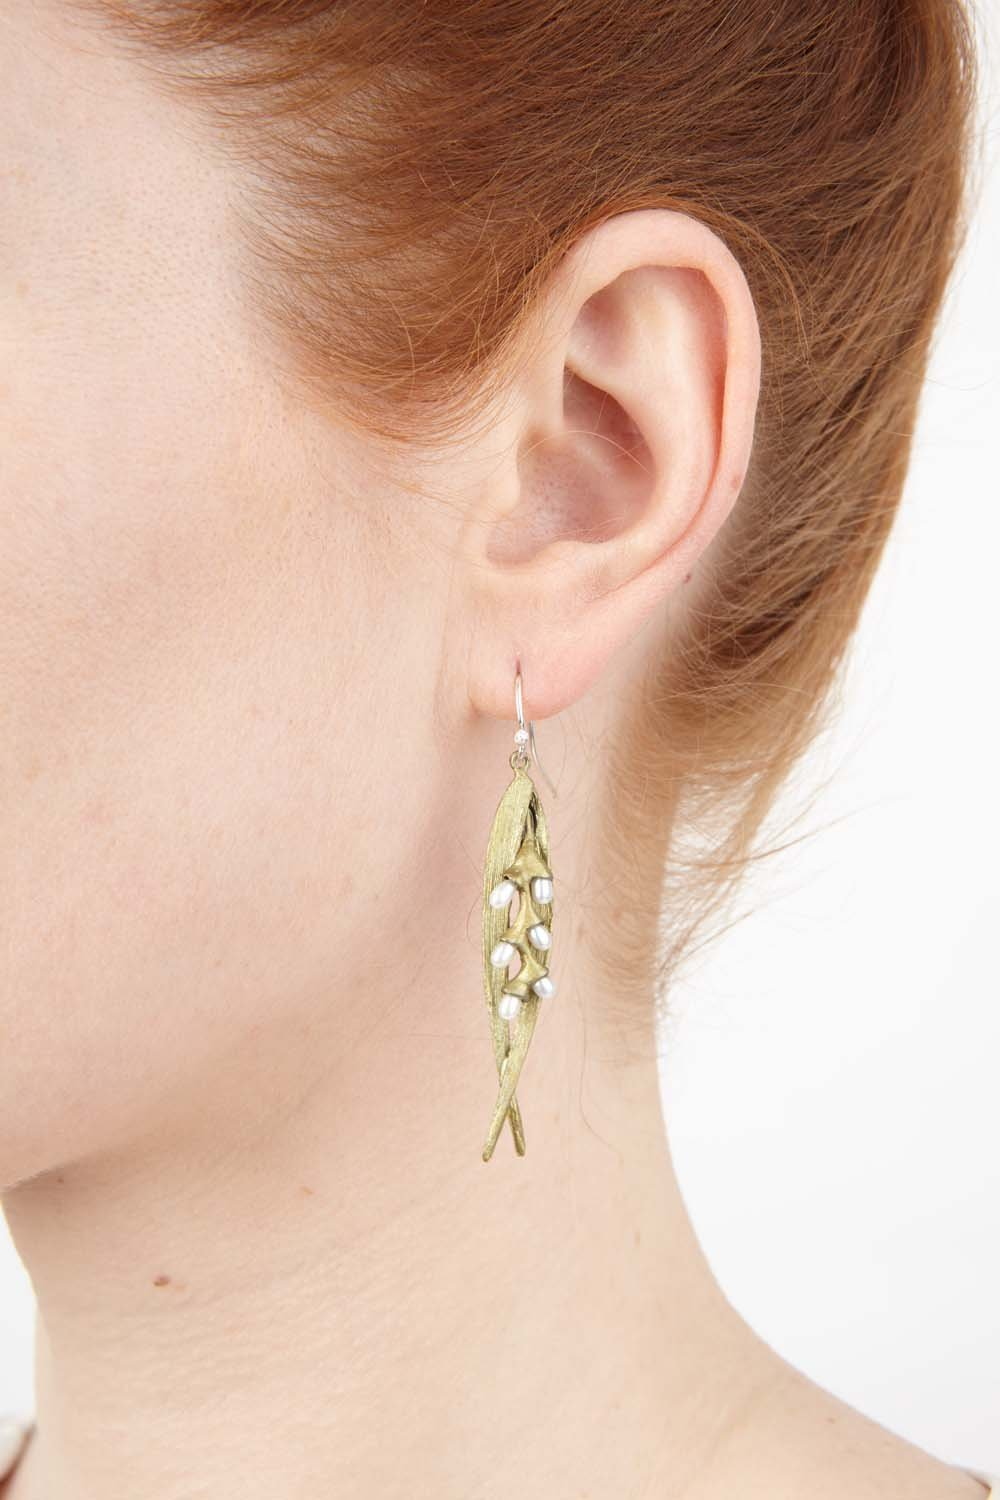 Rice Earrings - Double Leaf Pearl Wire